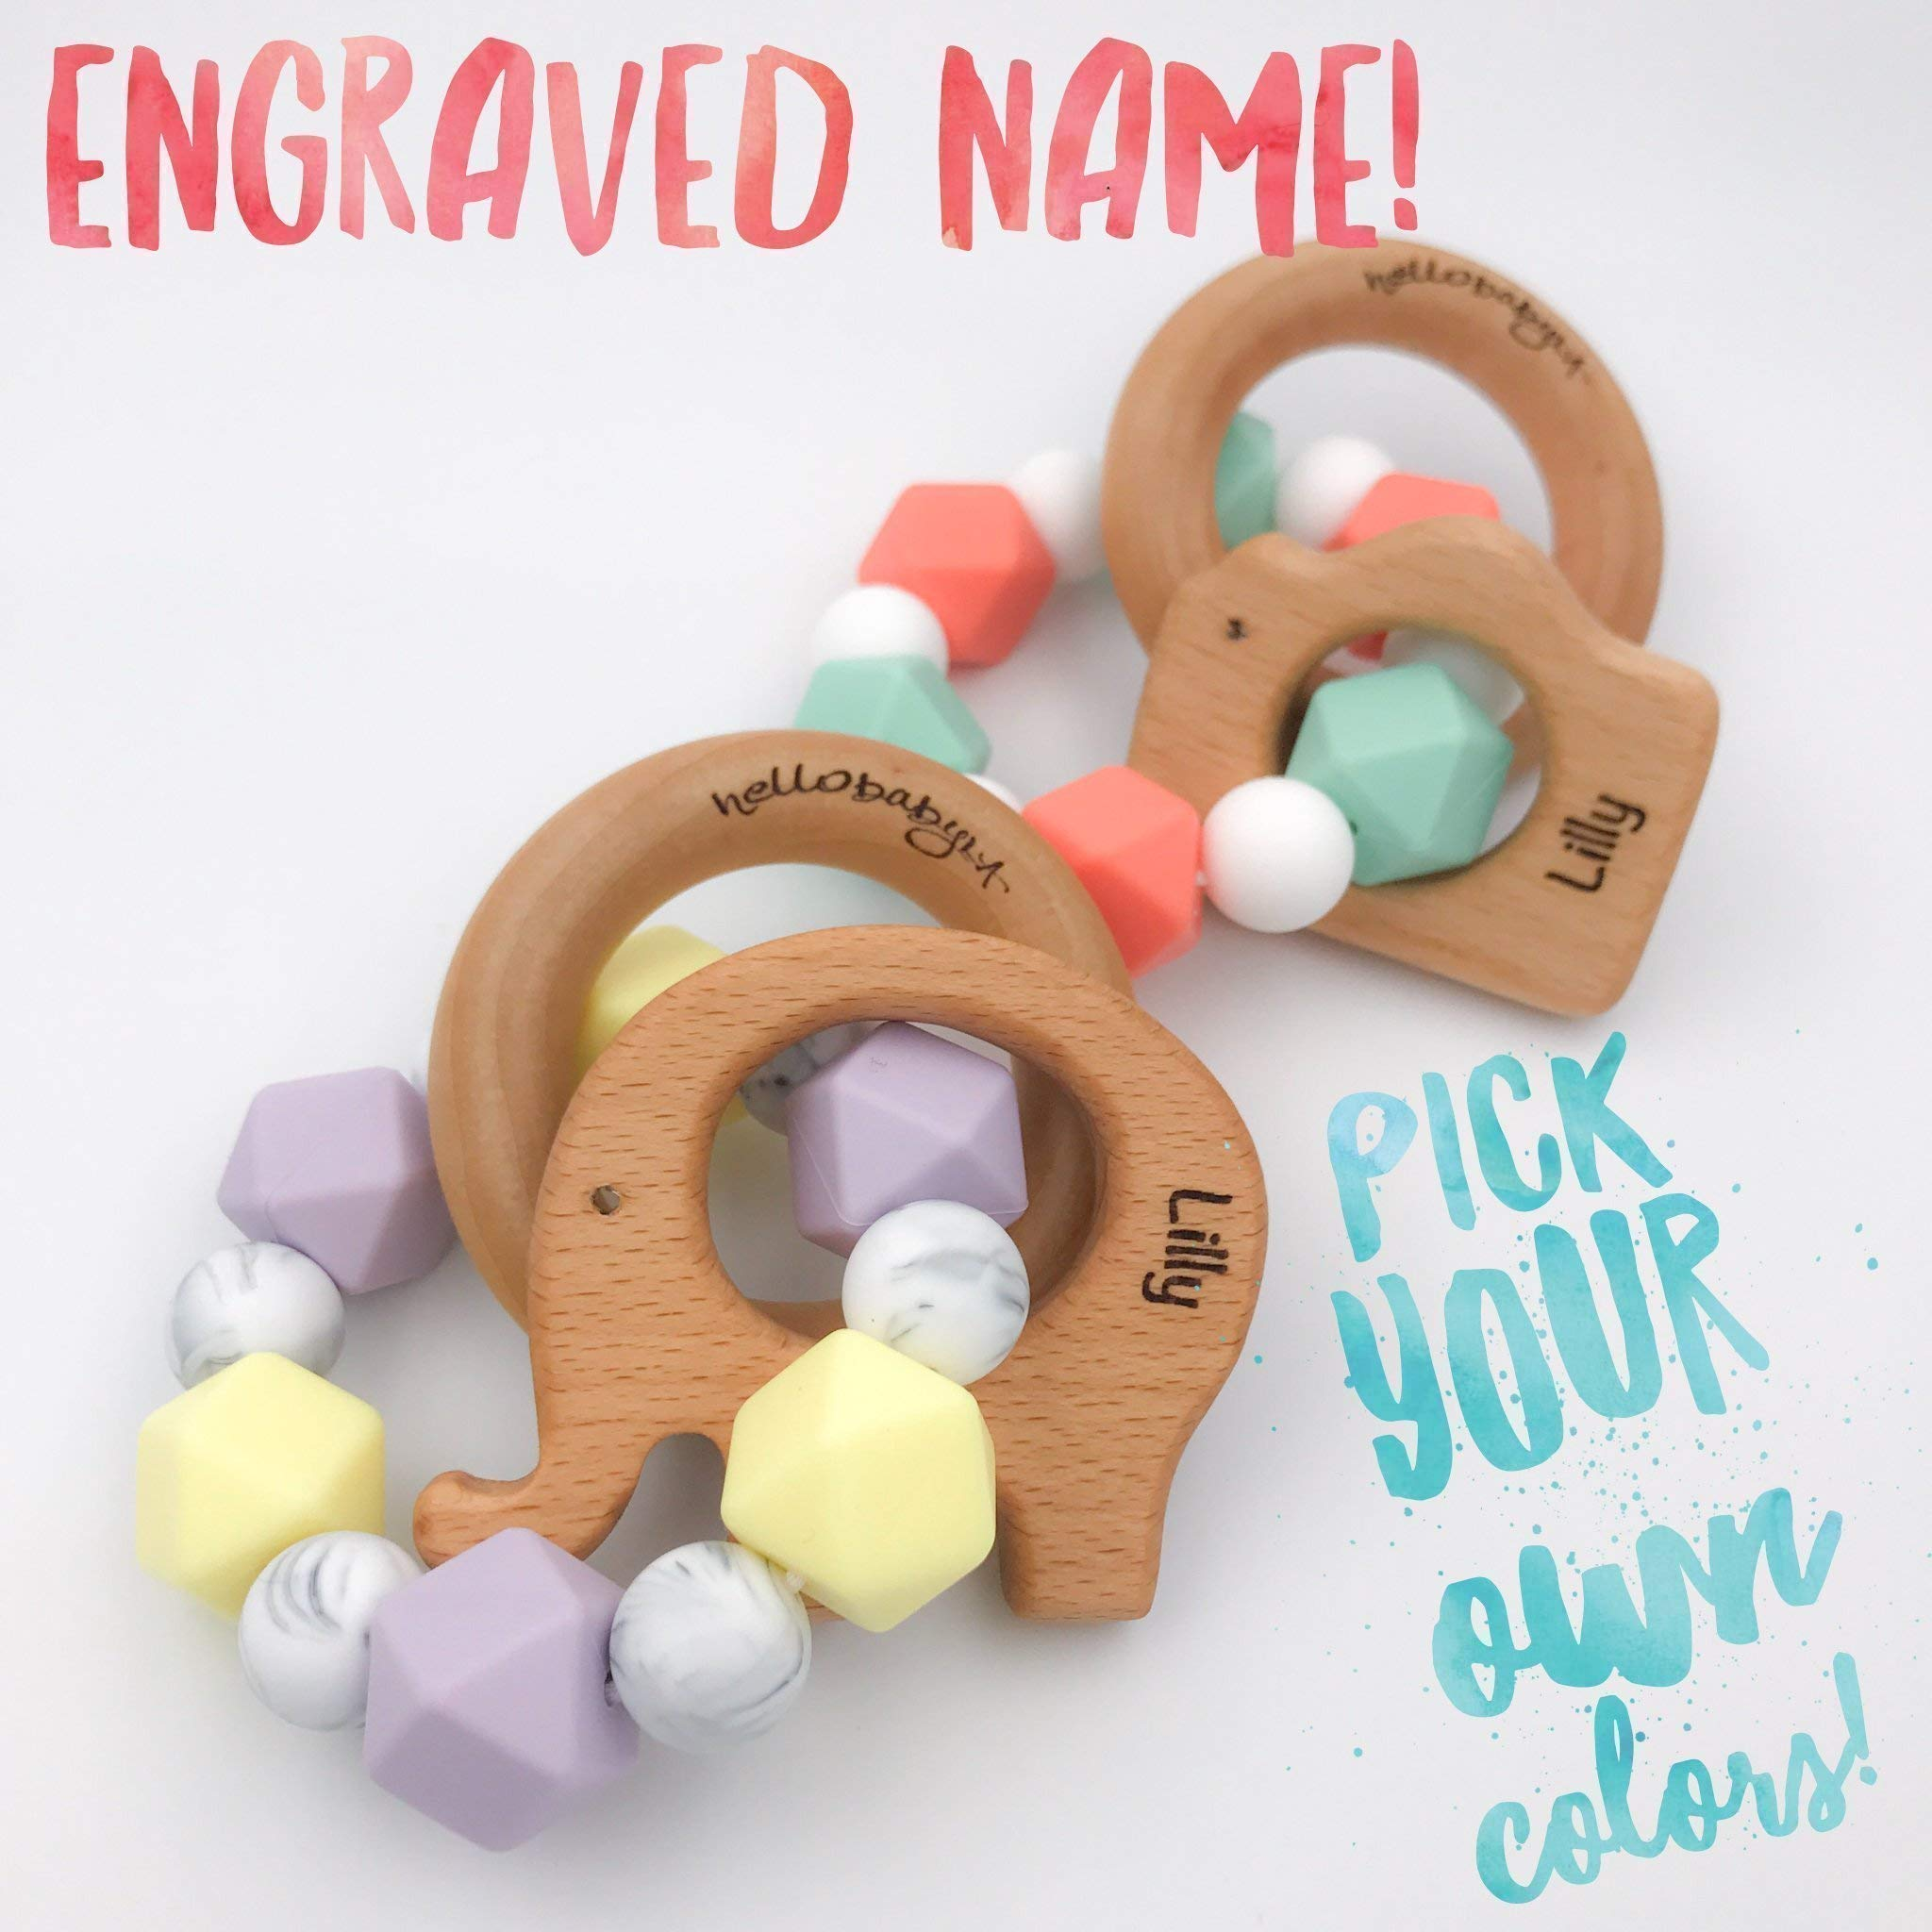 ENGRAVED Personalized & Customized Animal Teether Rattle (Choose Your Colors/Animal!) | Bird Elephant Camera Heart Bunny Fish Whale Hedgehog Giraffe Star | Boy Girl Gender Neutral Baby Teething Gift |